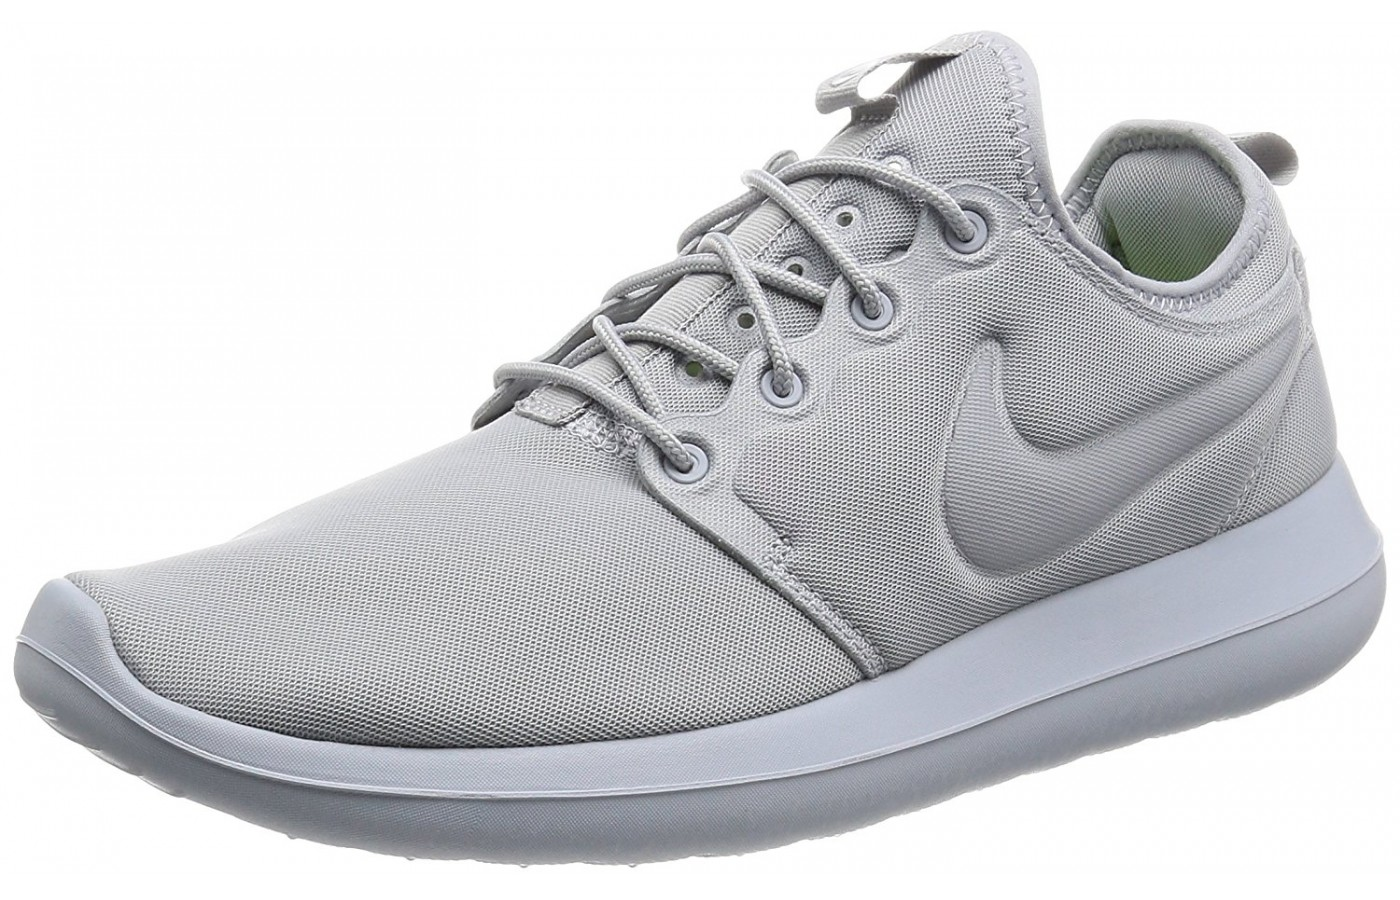 d164d6d07872 A three quarter view of the Nike Roshe 2 running shoe ...